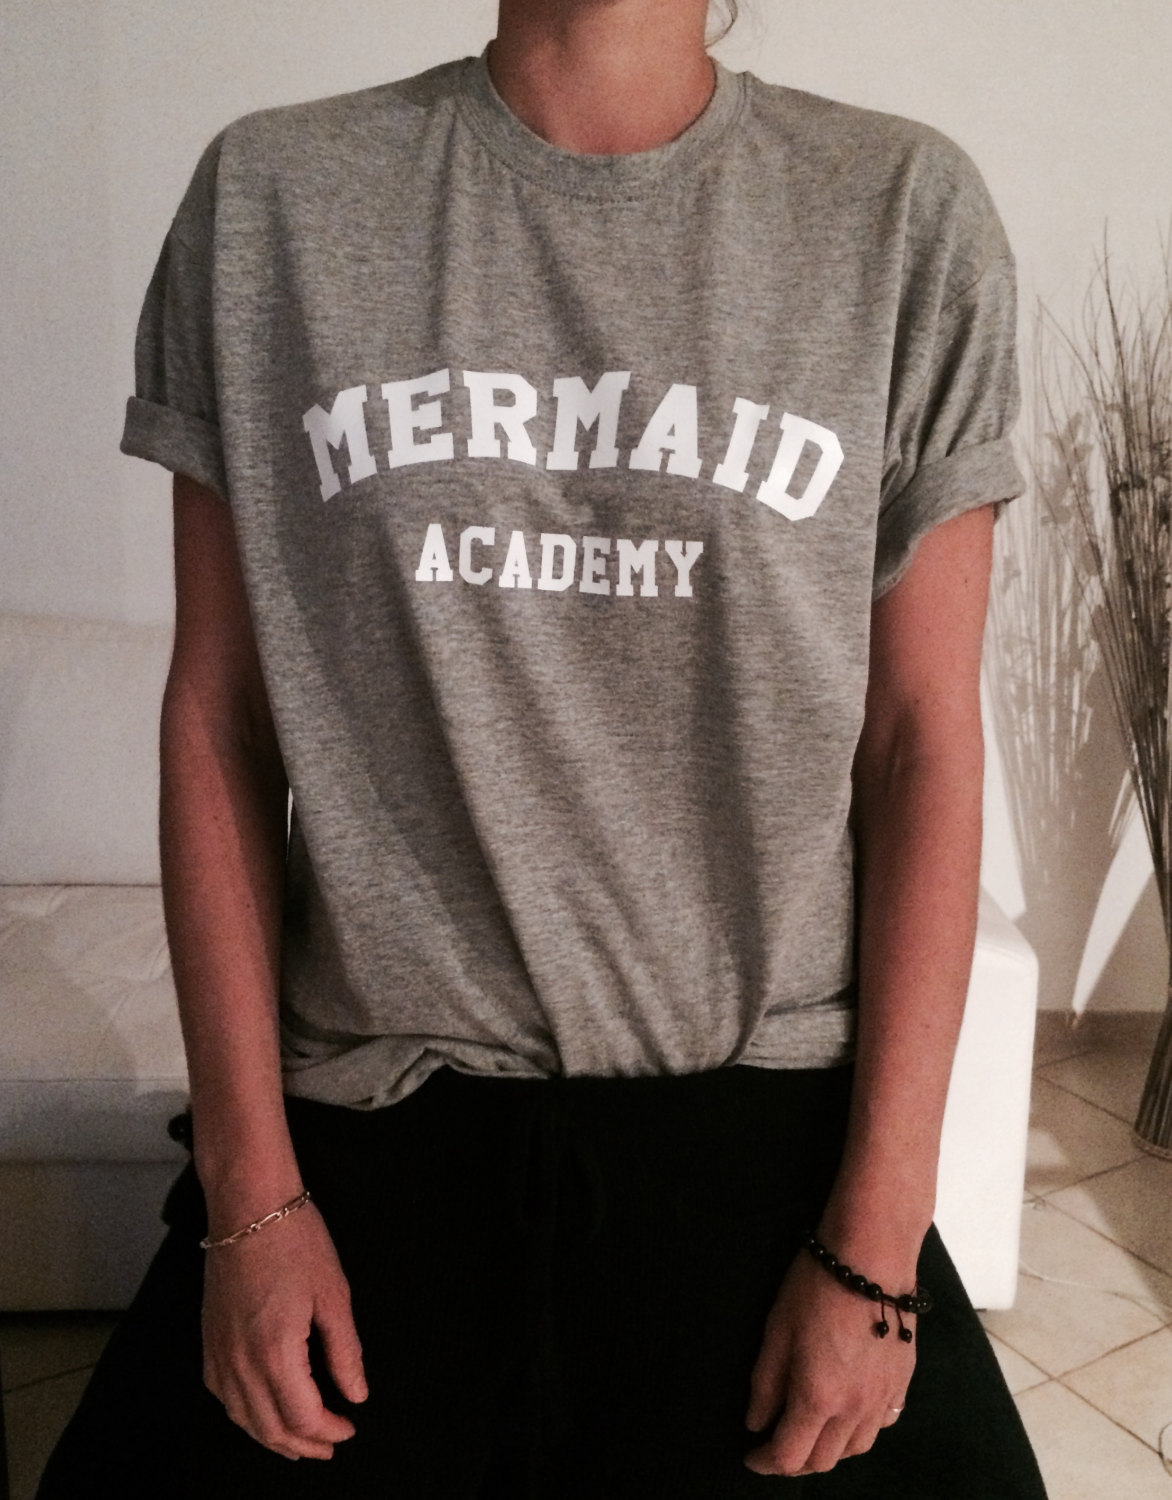 Mermaid Academy Tshirts For Women Girls Funny Slogan Quotes Fashion